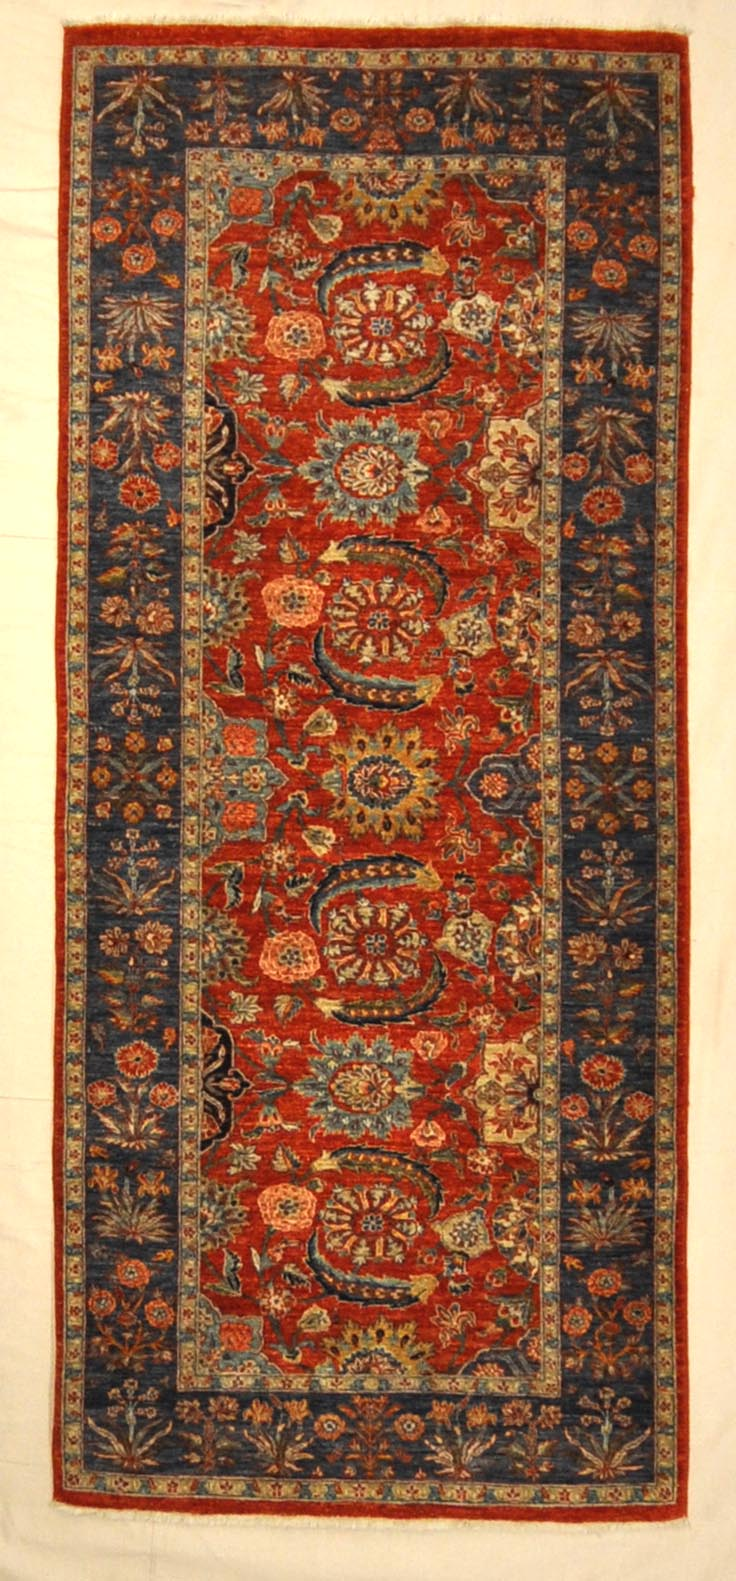 Fine Mughal Runner hand knotted of fine wool and organic dyes. These are the perfect colors to incorporate into your home.